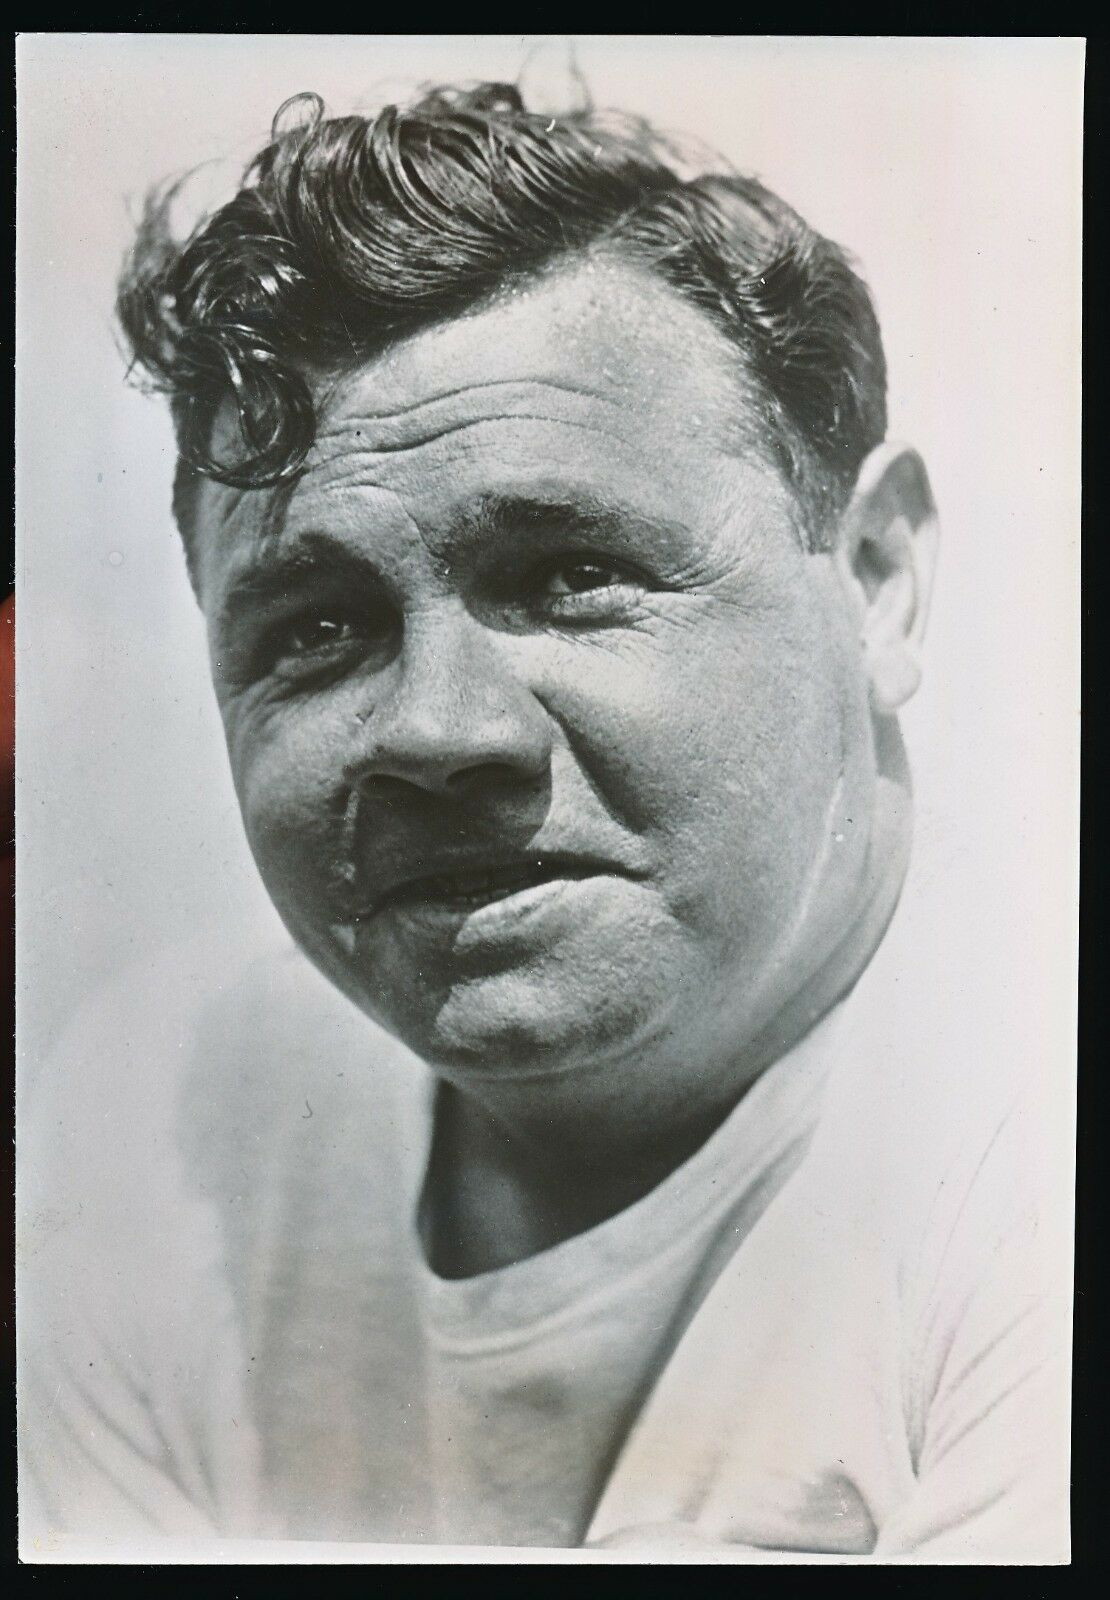 BABE RUTH 1930s Type 1 German Photo By Keystone View PSA/DNA